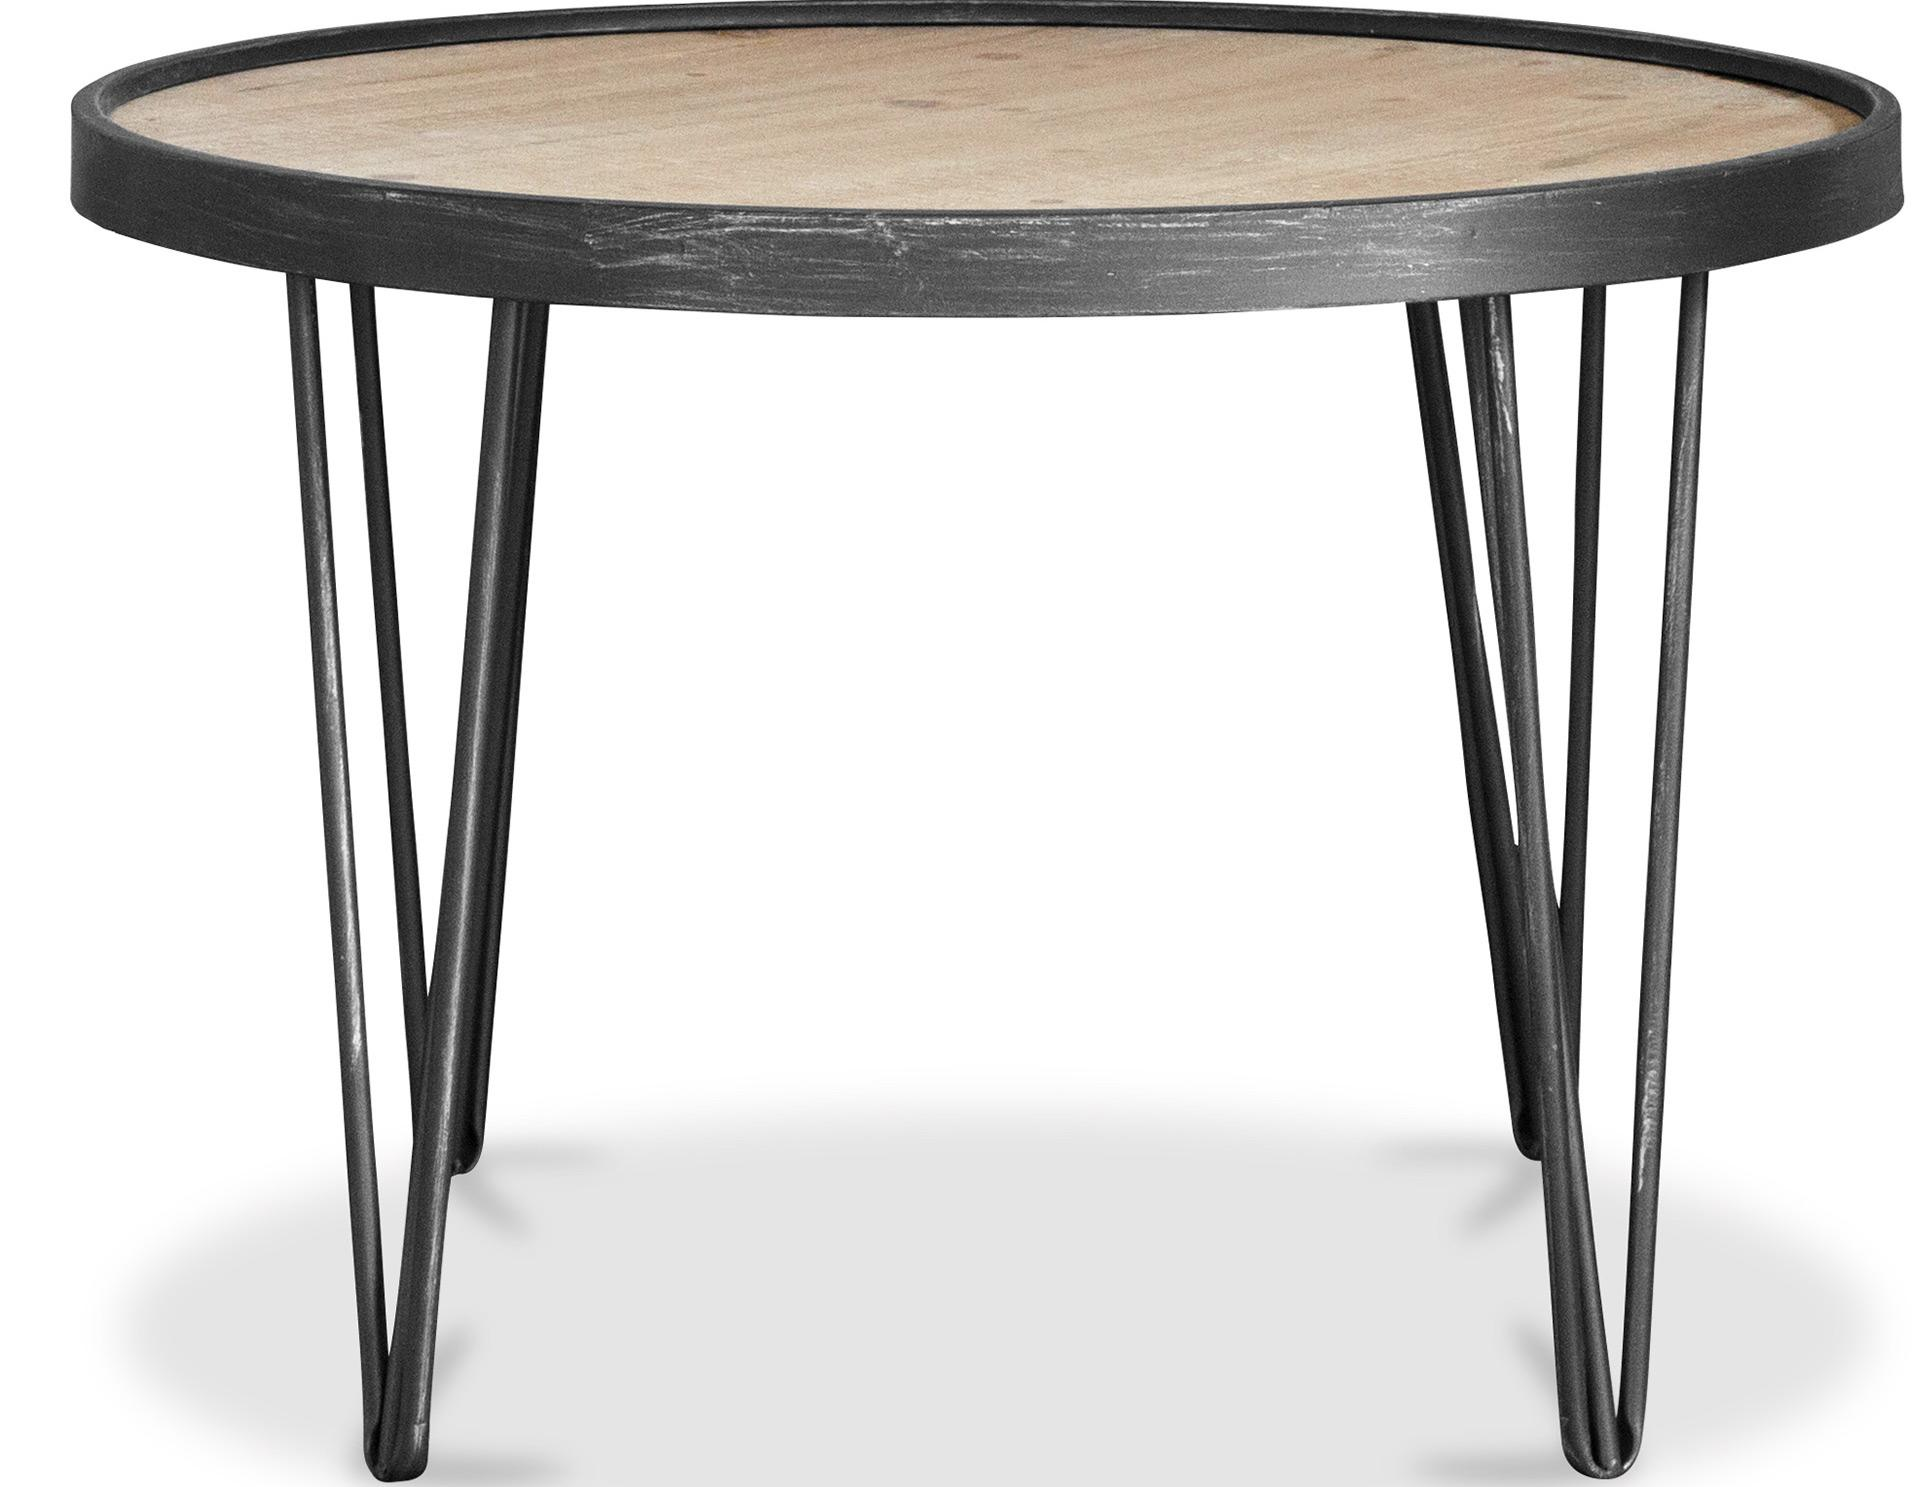 elegant table basse ronde bois metal id es de conception de table basse. Black Bedroom Furniture Sets. Home Design Ideas